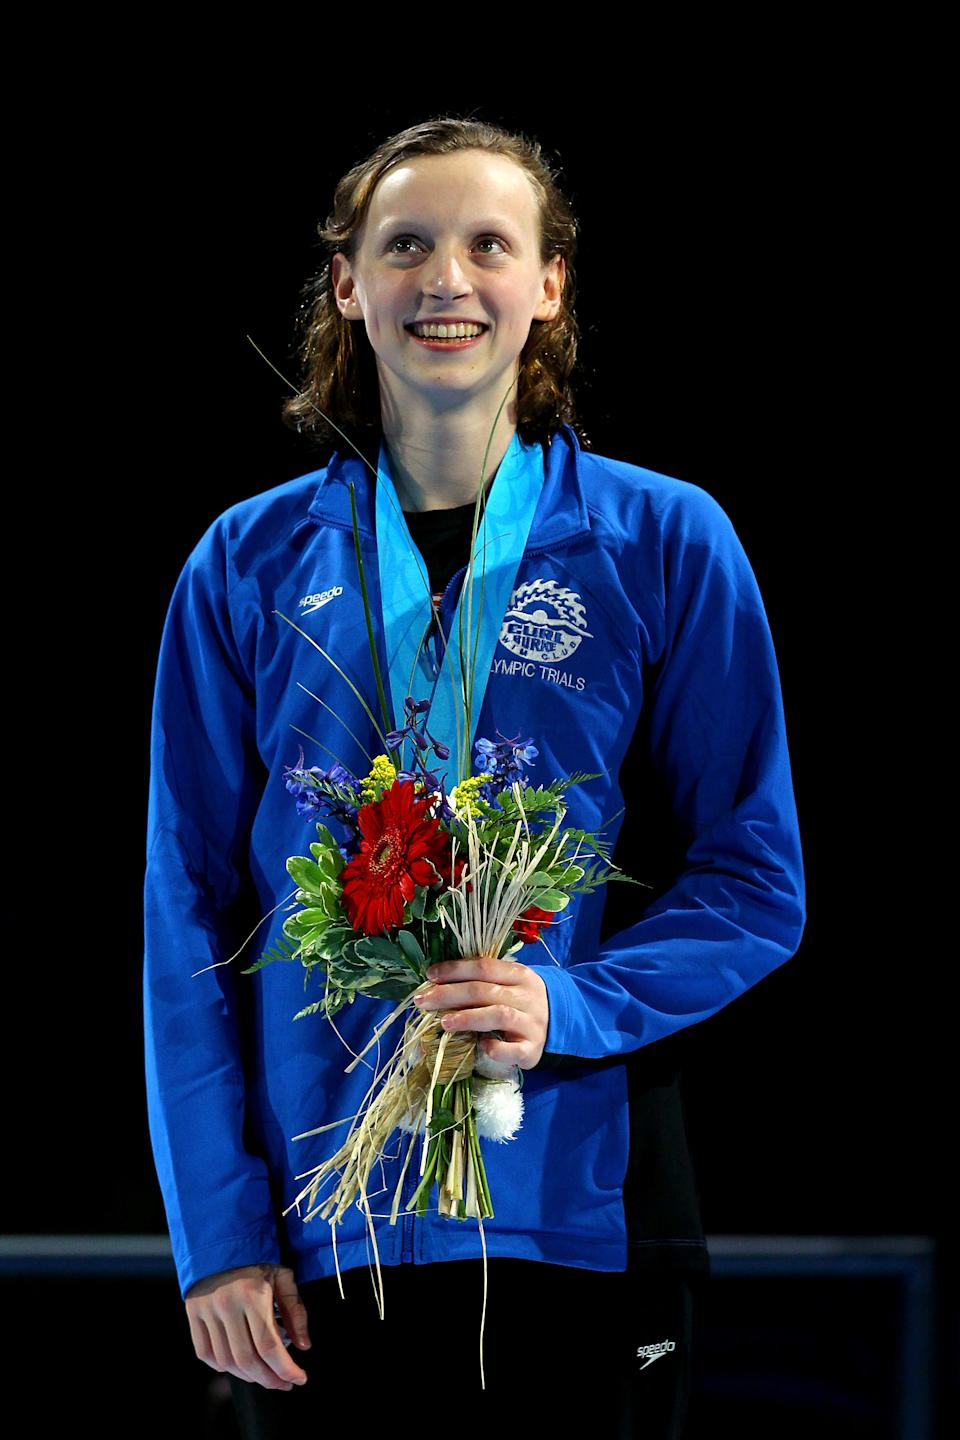 America's youngest swimmer, Kathleen Ledecky, 15, participates in the medal ceremony for the Women's 800 m Freestyle during Day Seven of the 2012 U.S. Olympic Swimming Team Trials at CenturyLink Center on July 1, 2012 in Omaha, Nebraska. (Al Bello/Getty Images)